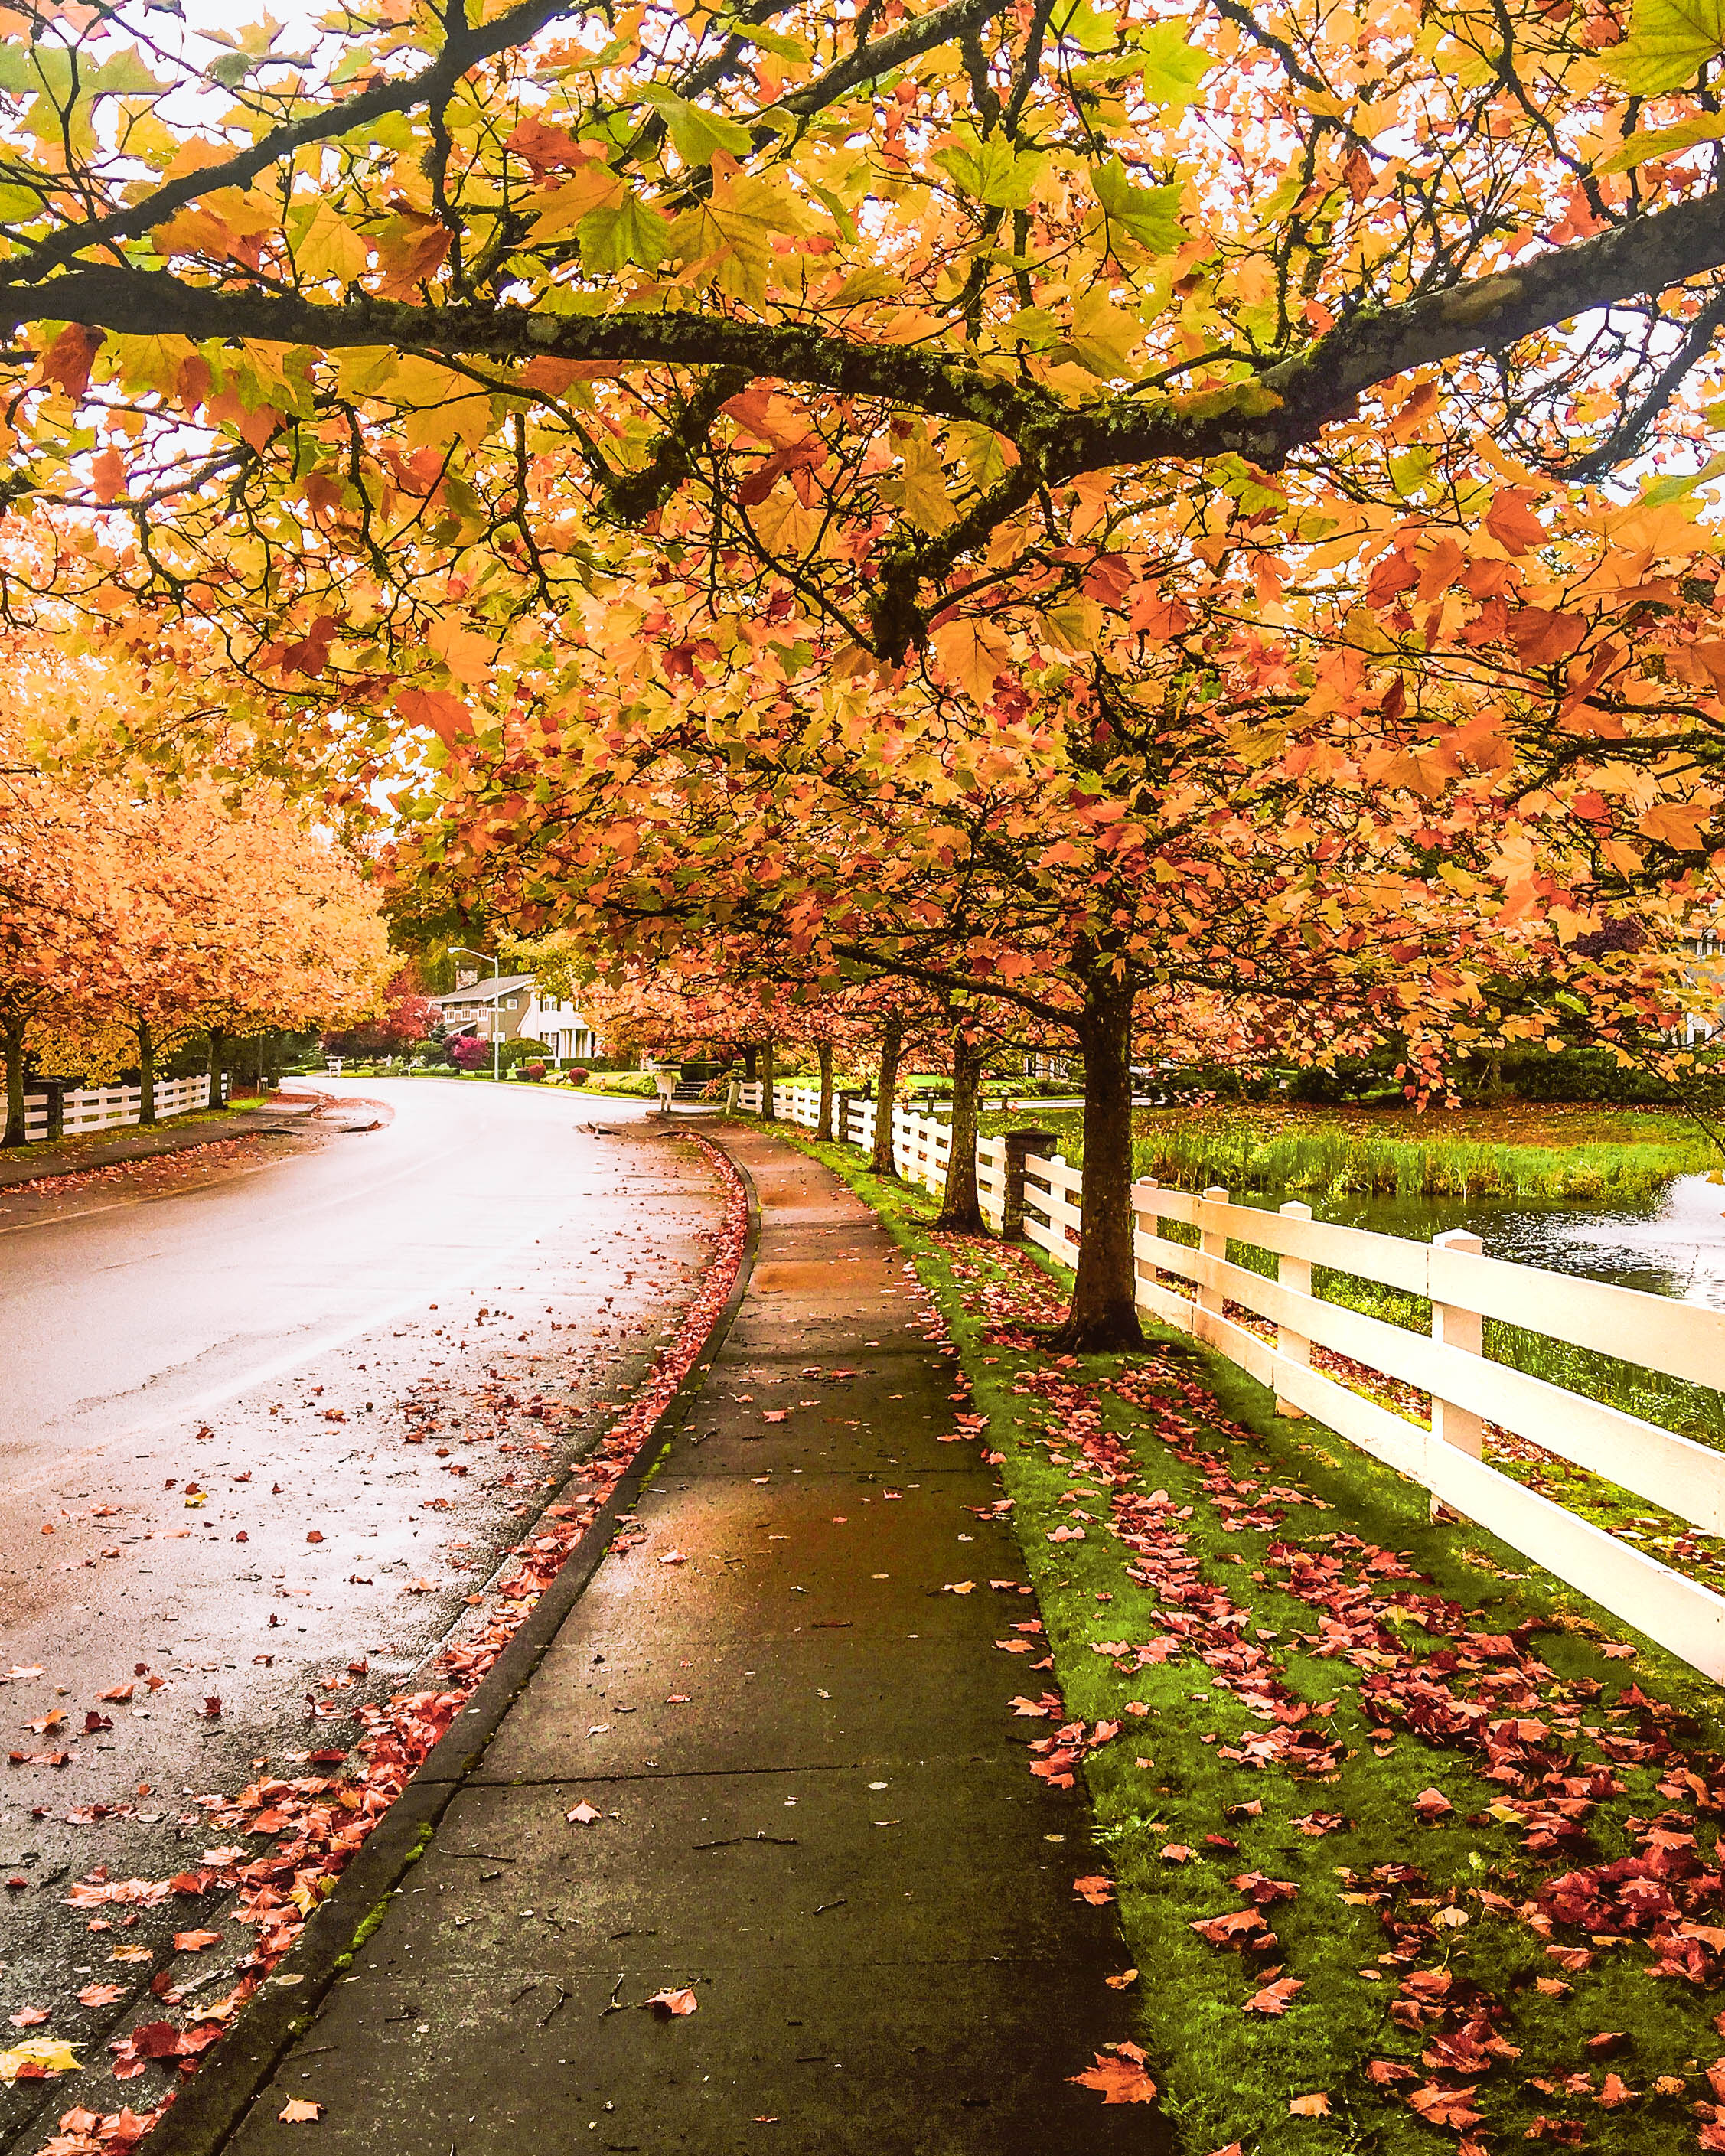 Fall Leaves in Seattle, Washington state